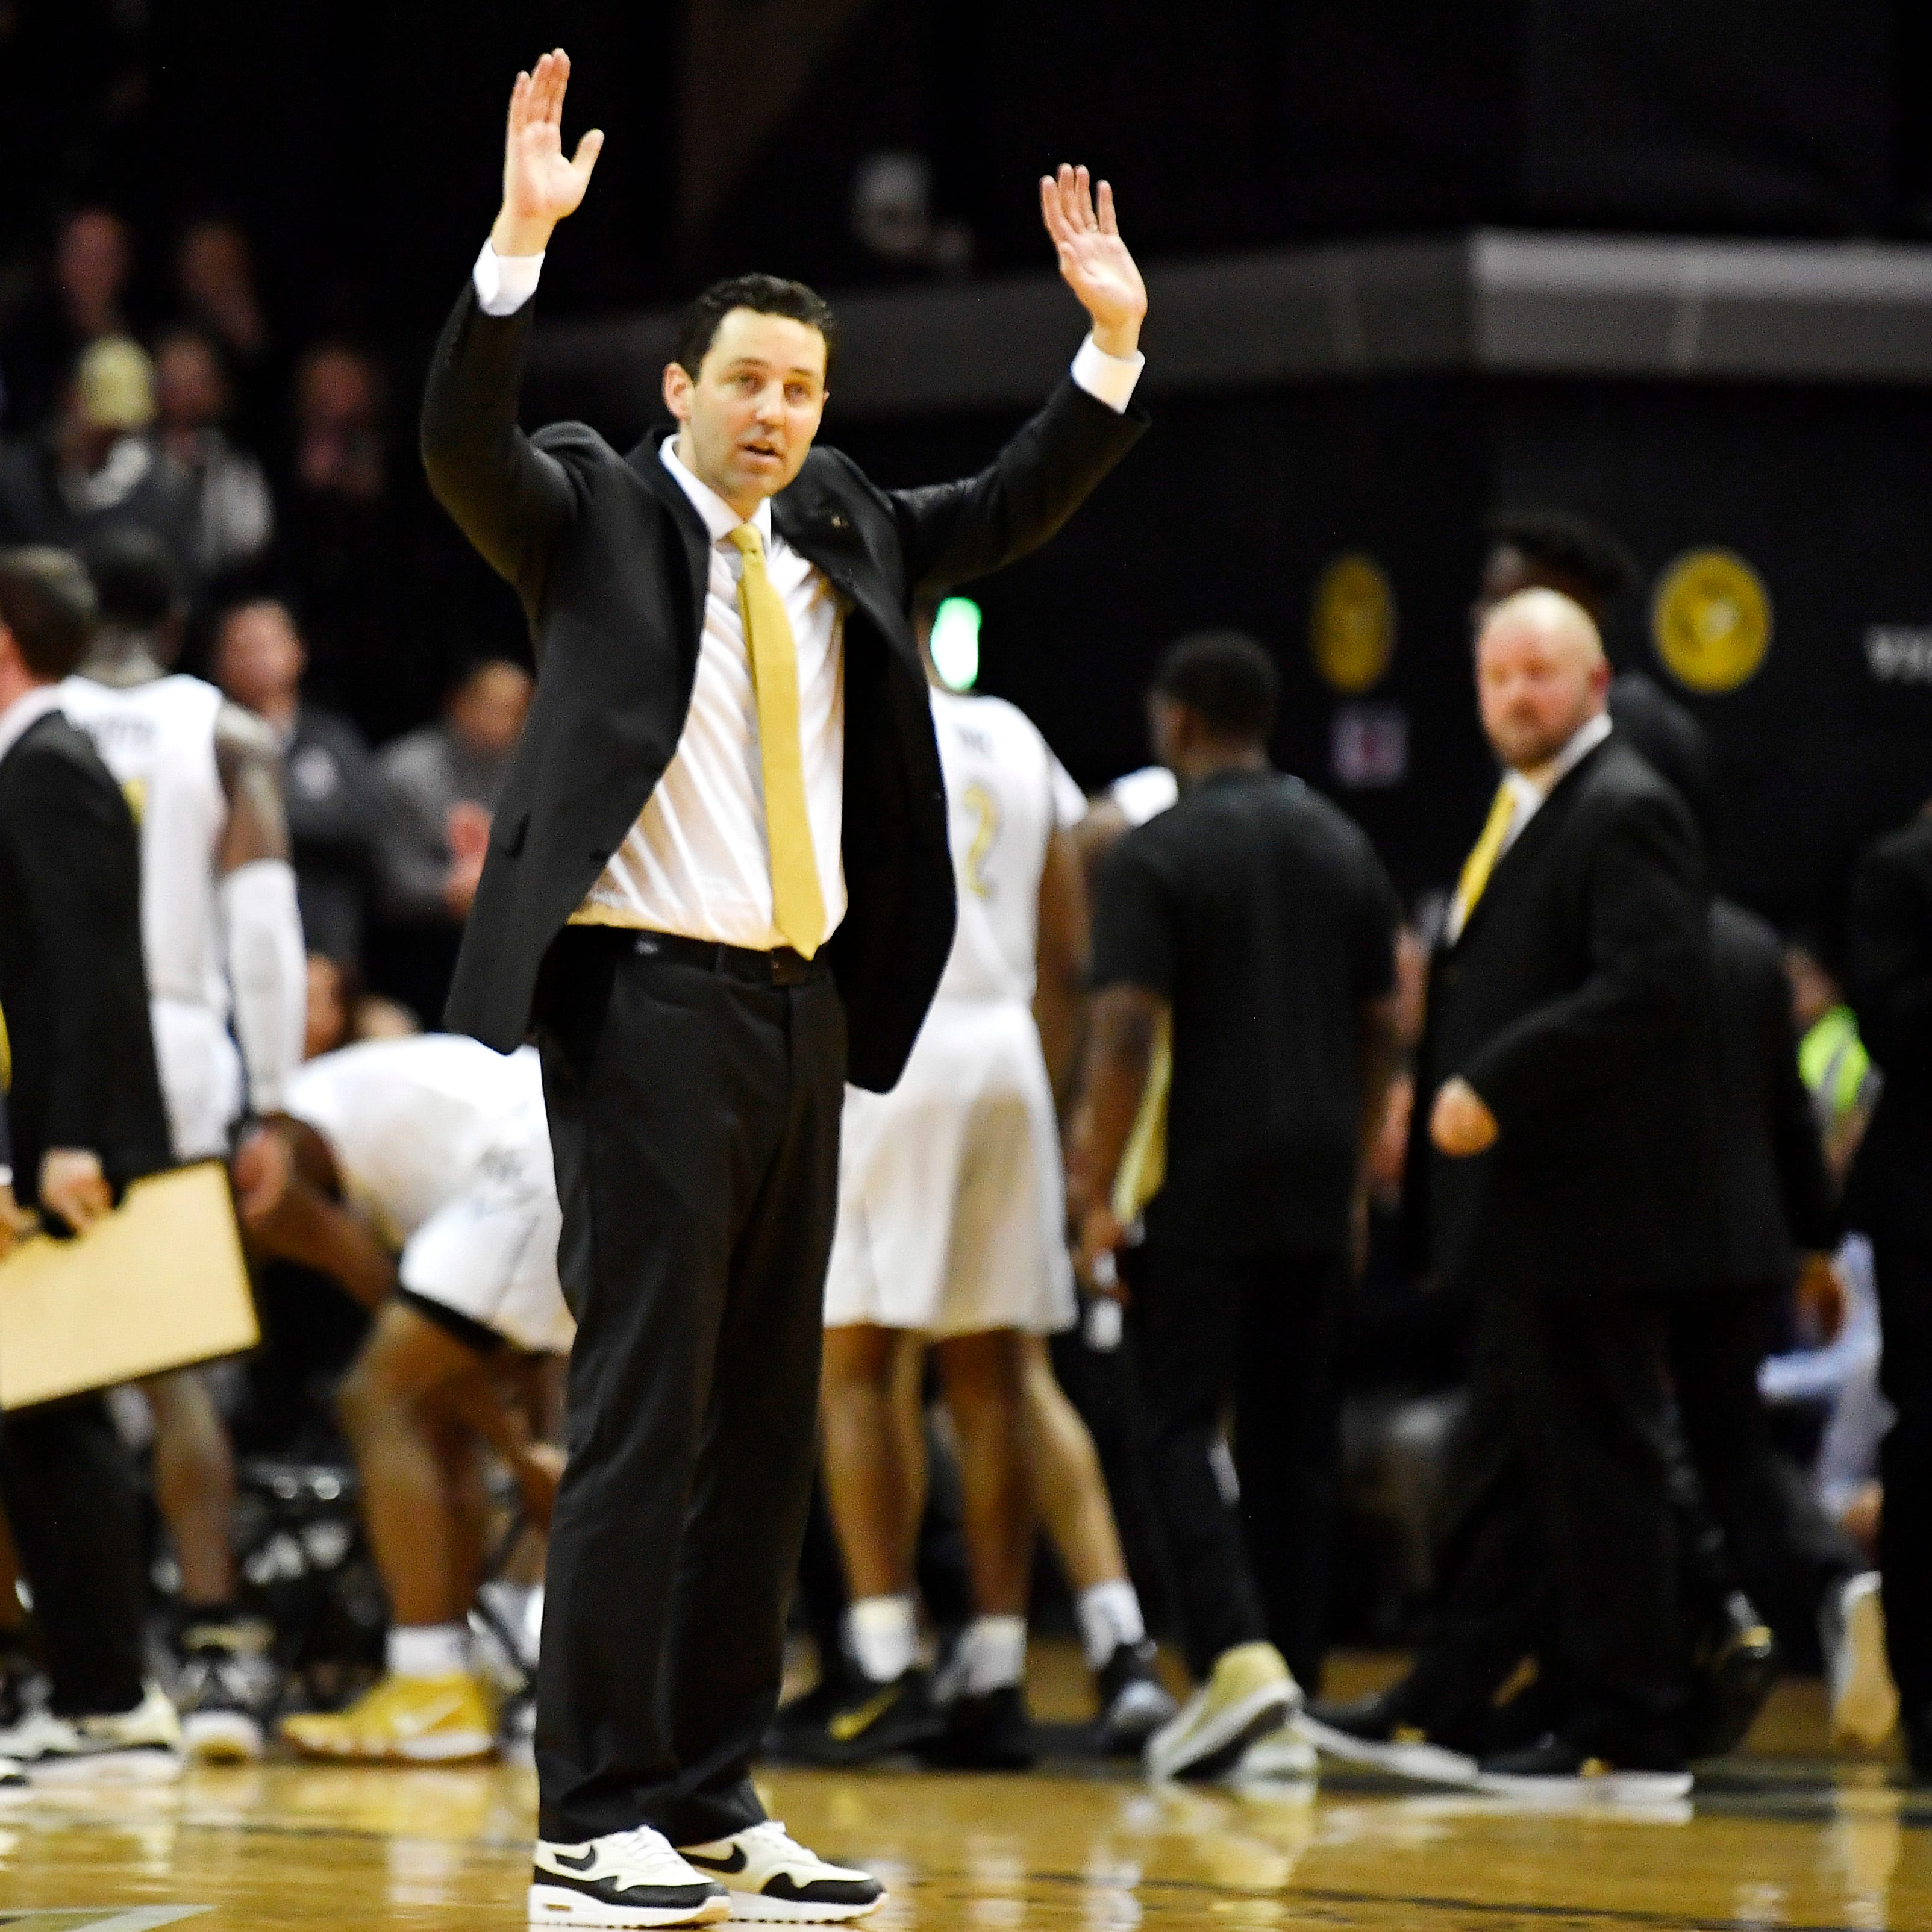 Vanderbilt's Bryce Drew takes longest losing streak of college career to UT Vols